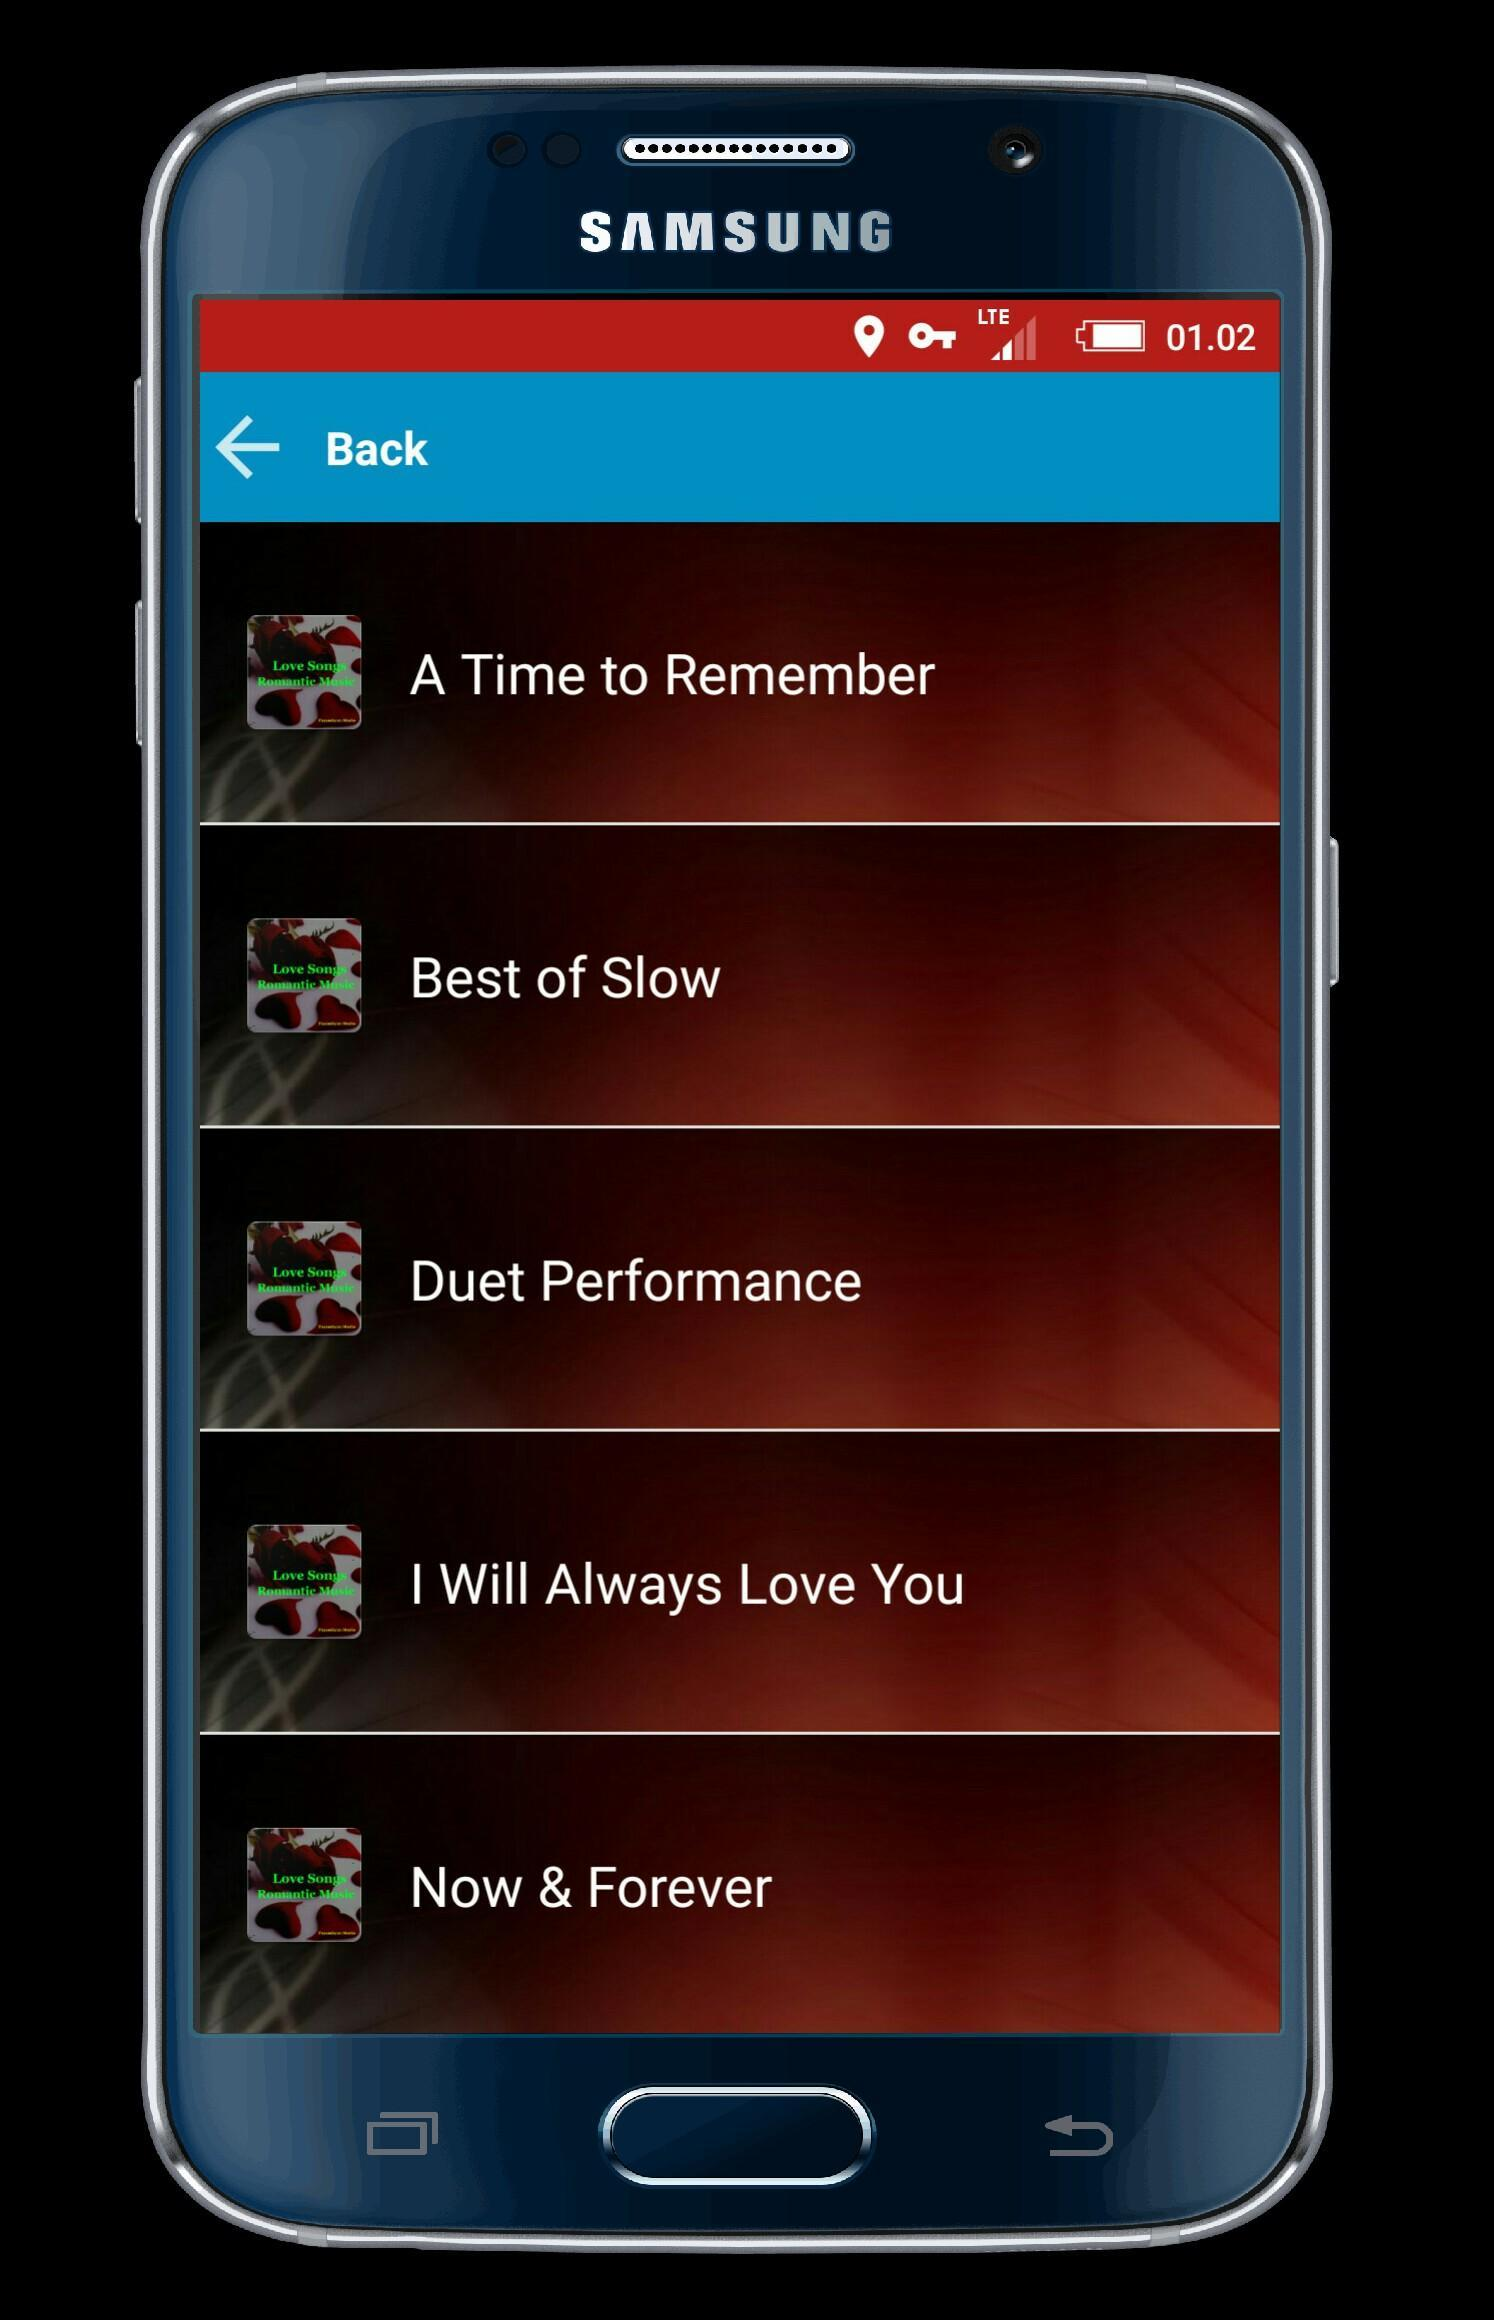 Love Songs Mp3 1980 - 2018 for Android - APK Download